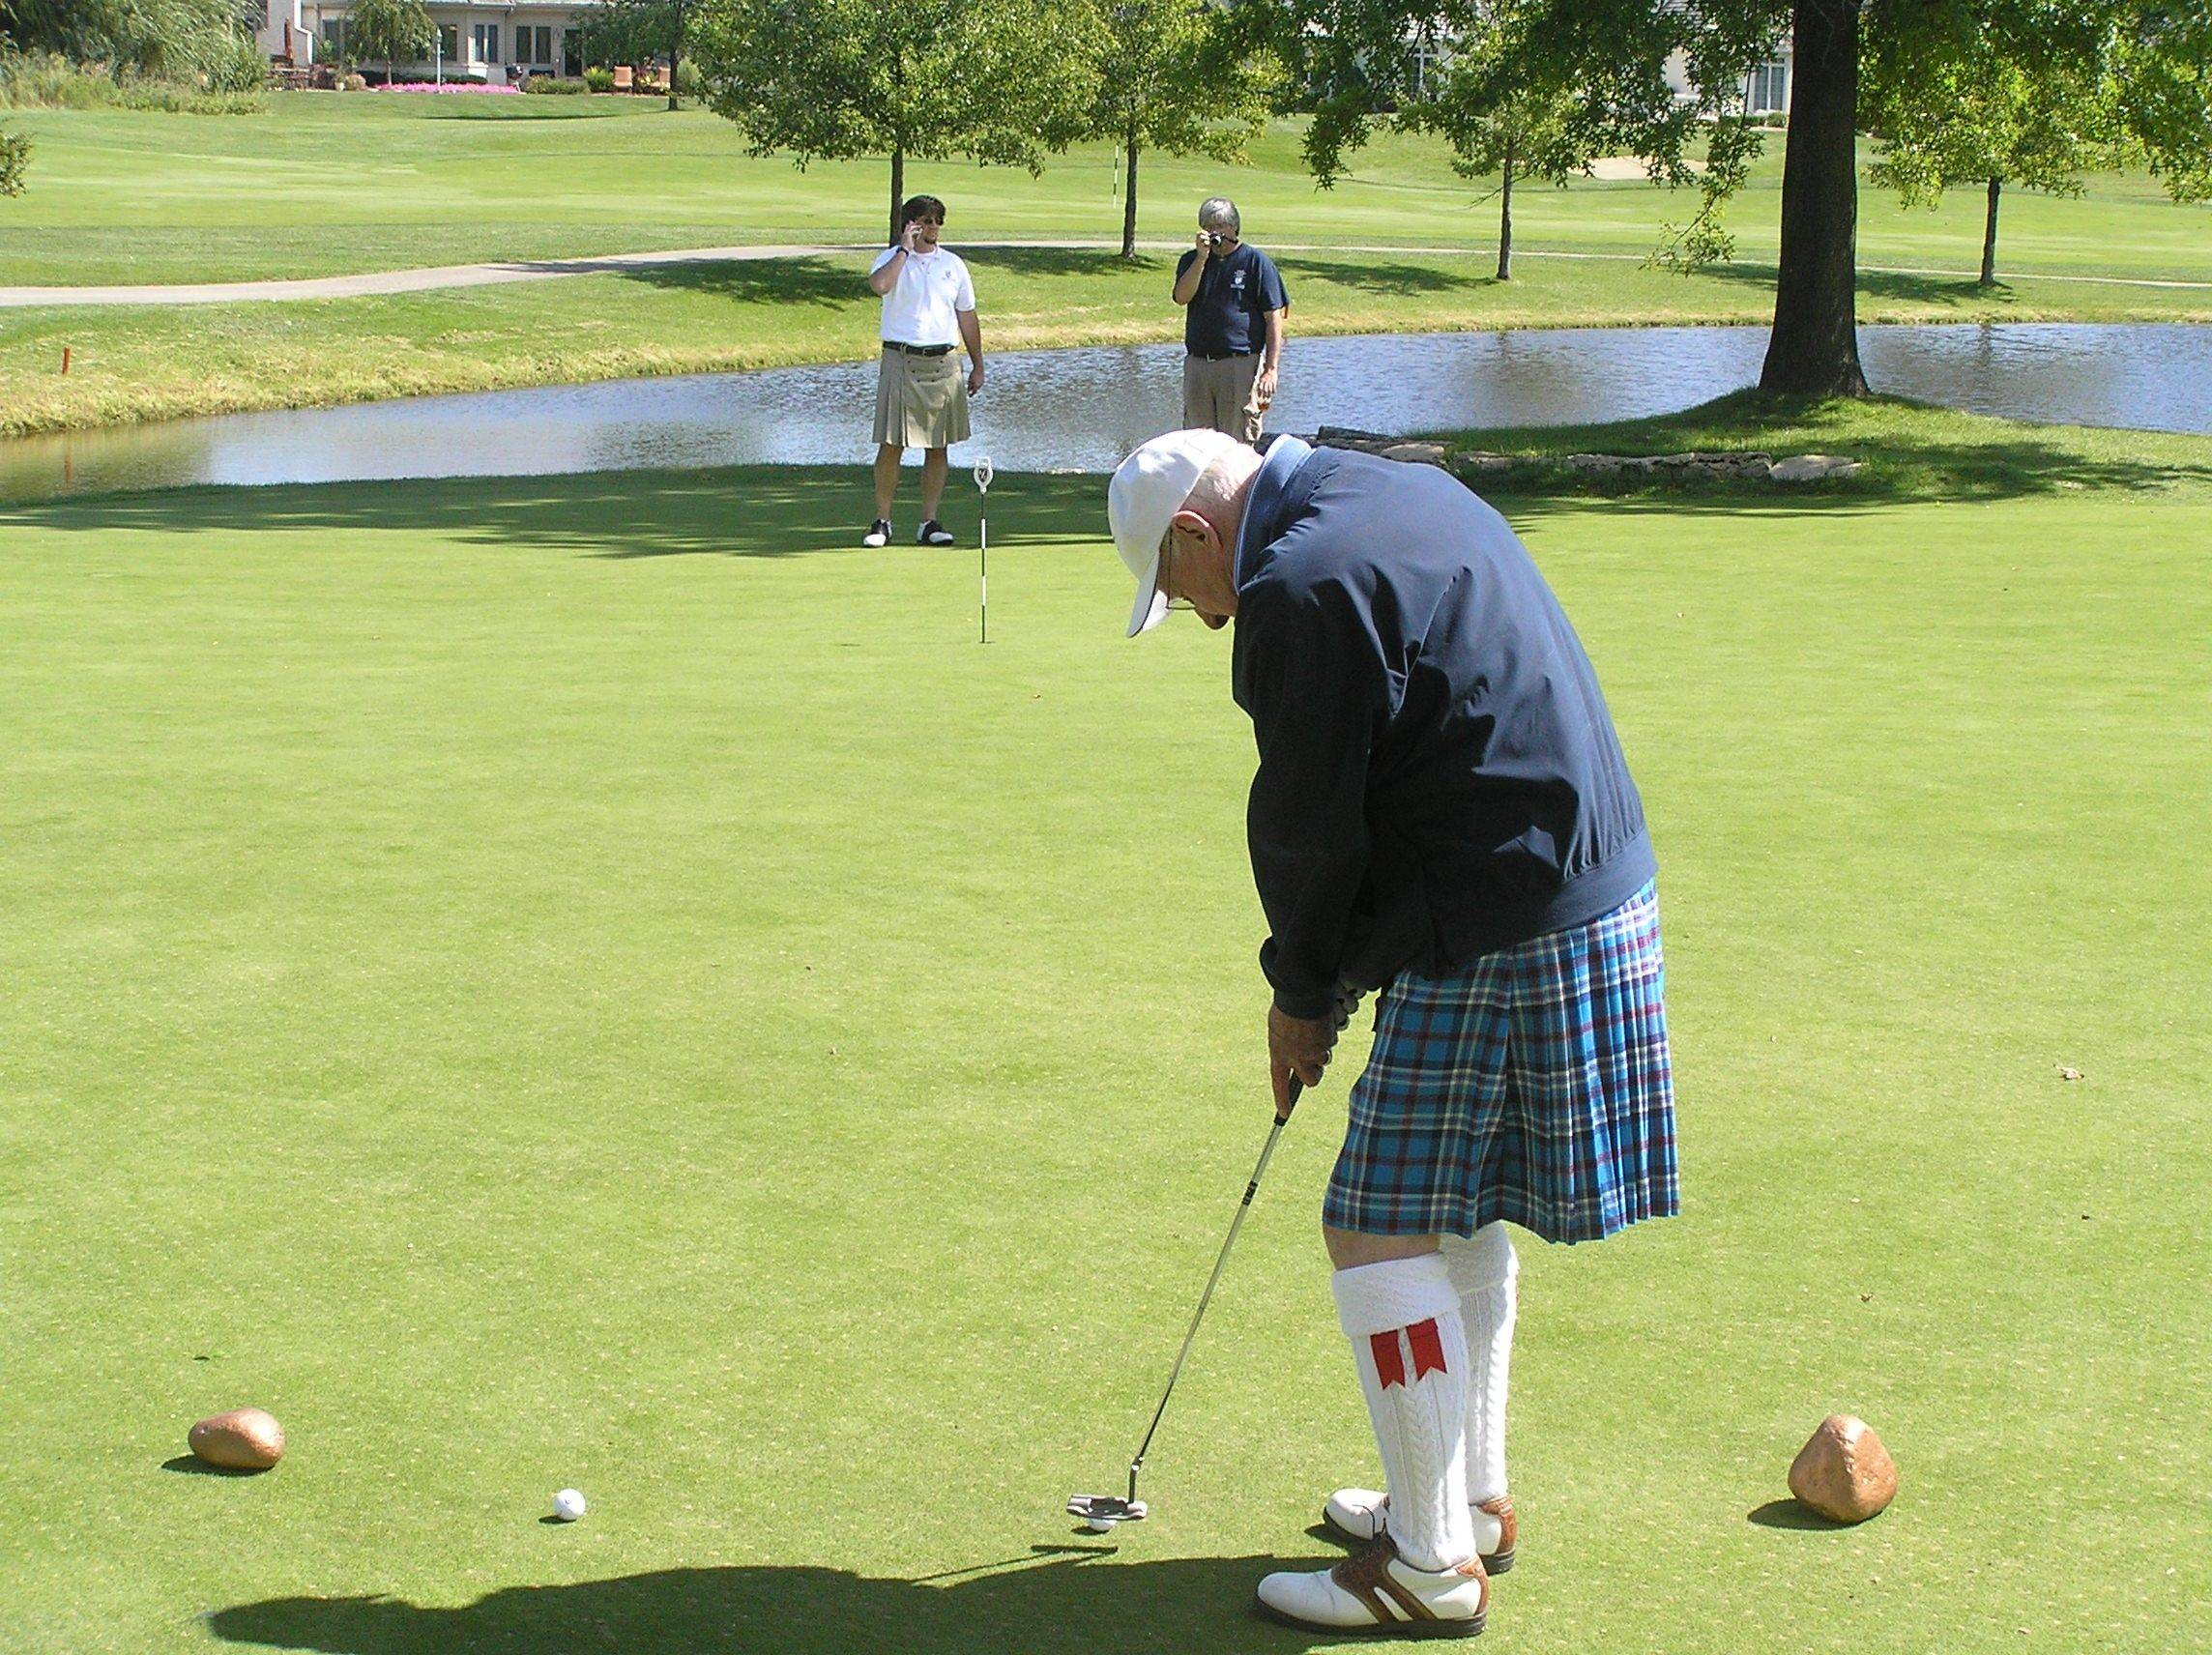 Kilts aren't required for golfers in the Chicago Kilted Classic outing on Sept. 1, but they're not out of place at the event benefiting the Illinois St. Andrew Society and the Scottish Home.